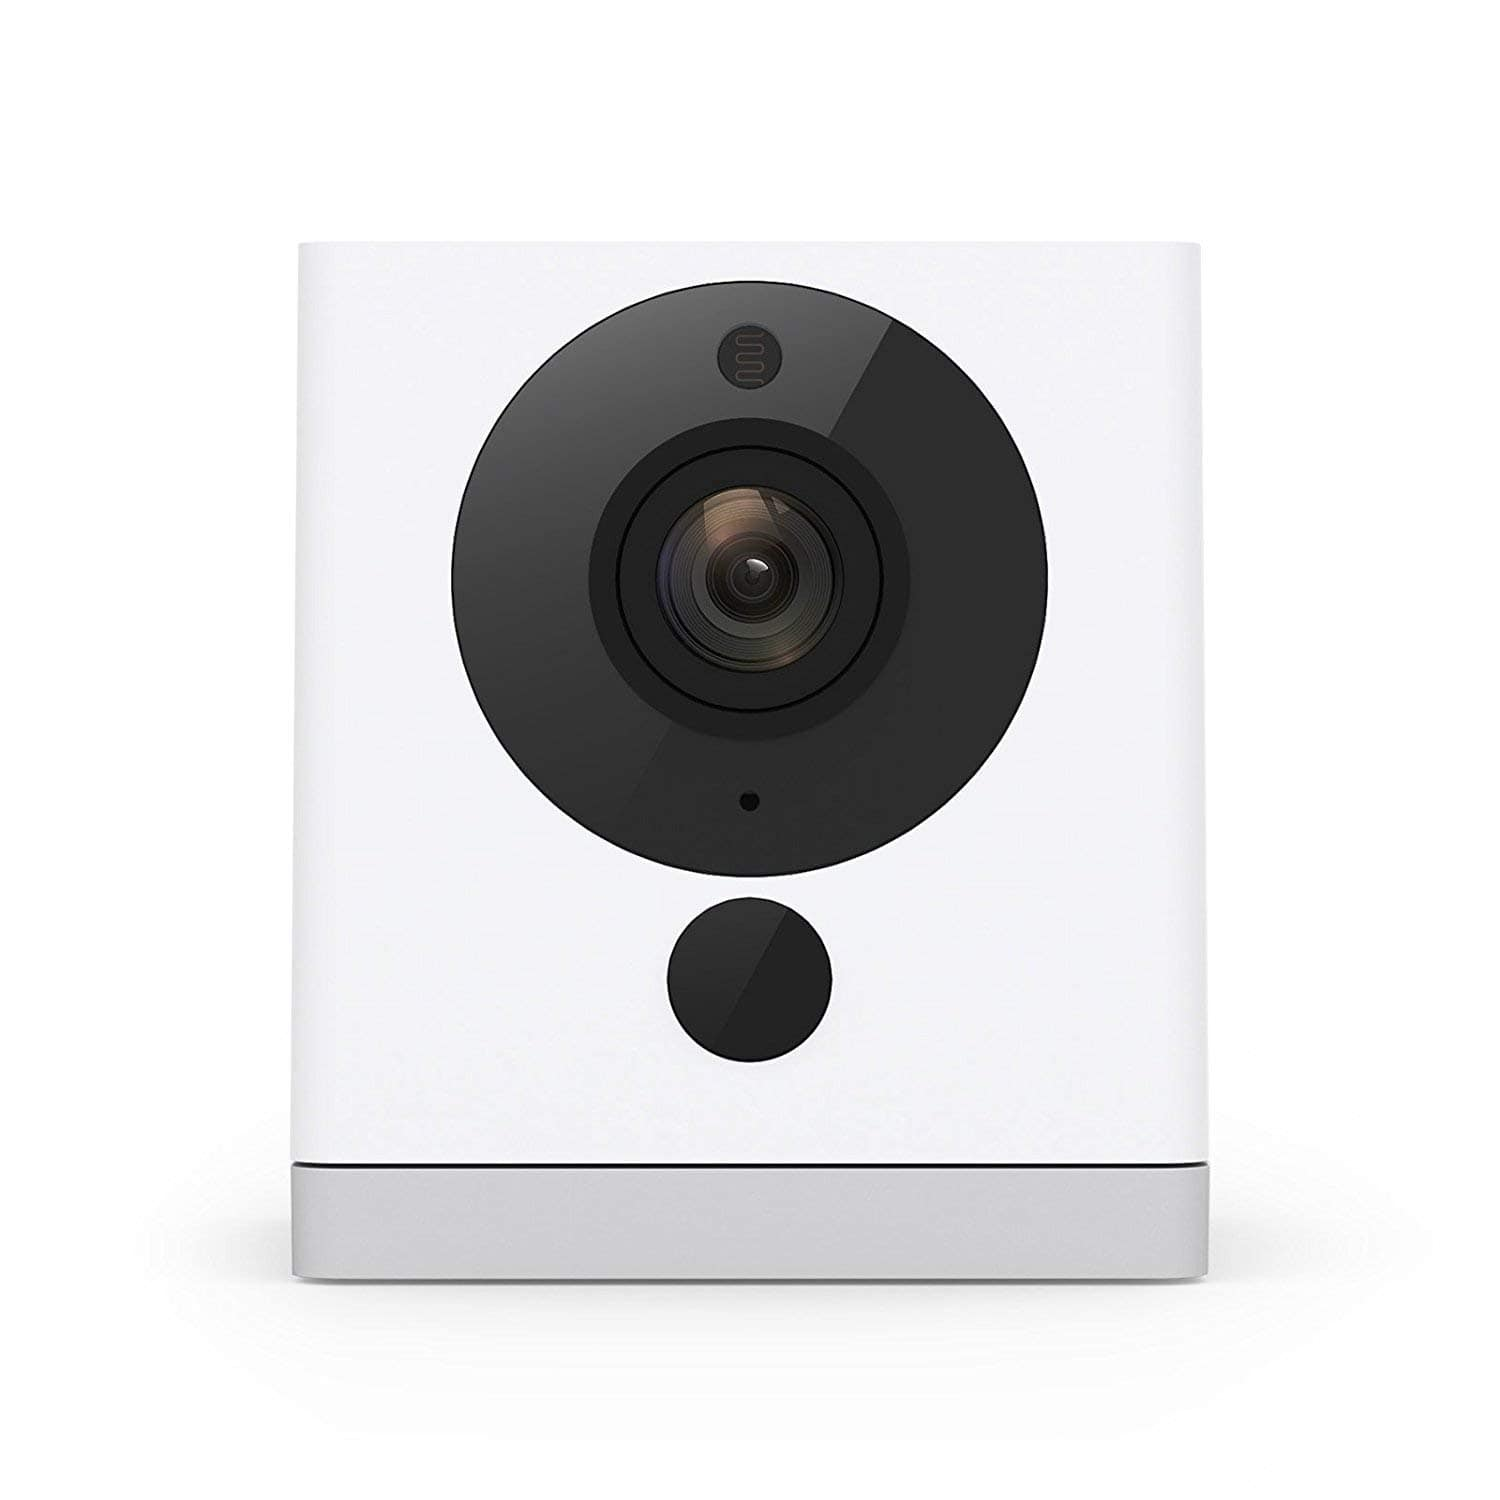 (YMMV) Pack of 2 Wyze Cam 1080p HD Indoor Wireless Smart Home Camera with Night Vision $38.57 after clipping 20% coupon